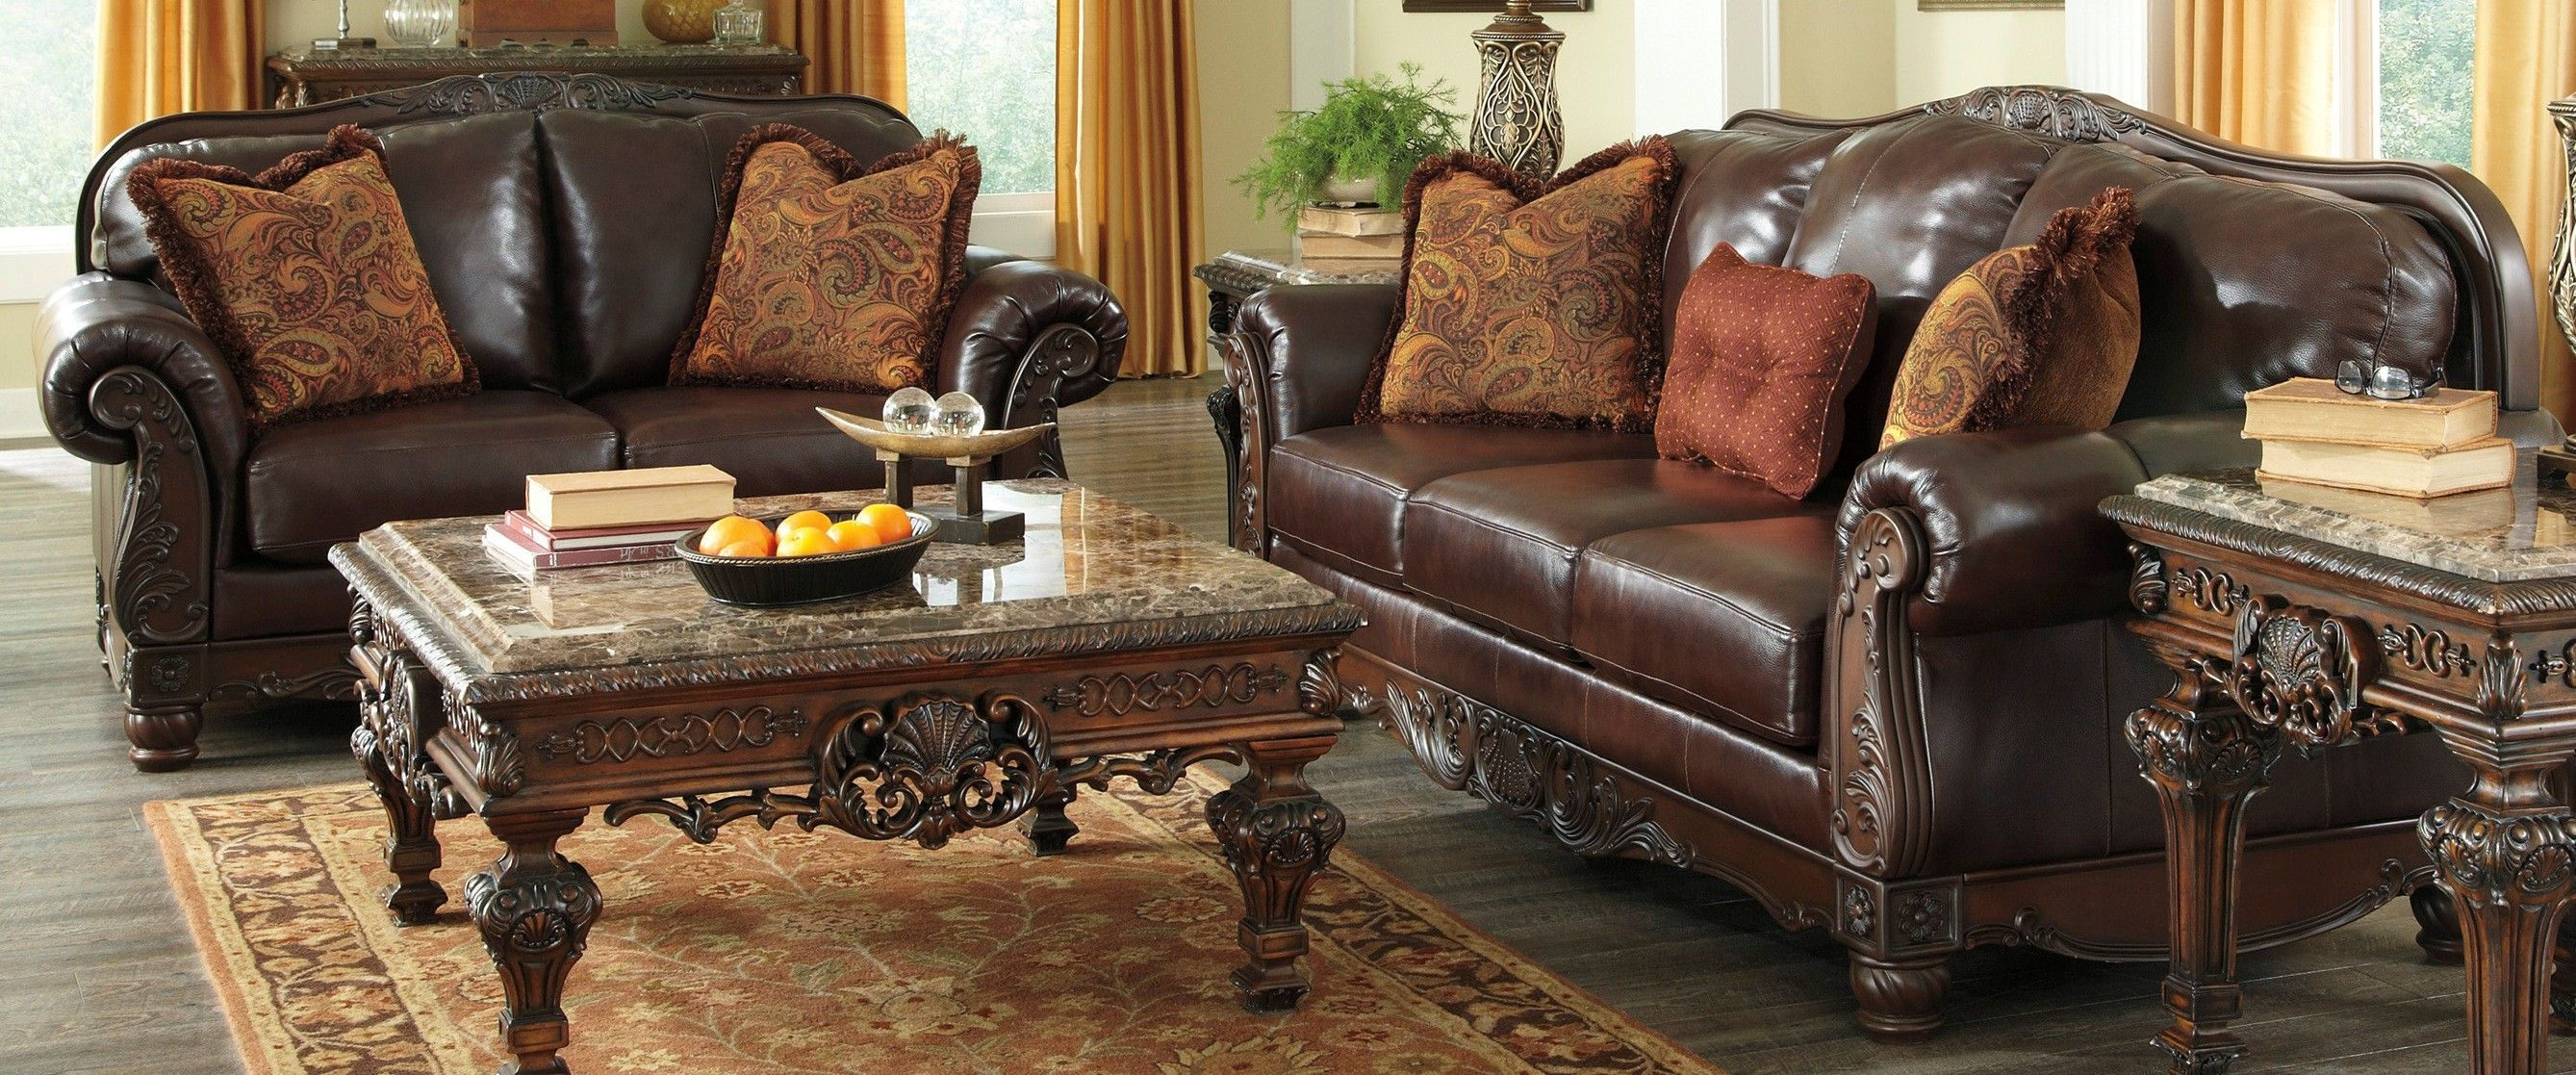 11 Smart Designs Of How To Make 3 Piece Living Room Set Cheap Leather Living Room Set Living Room Leather Ashley Furniture Living Room